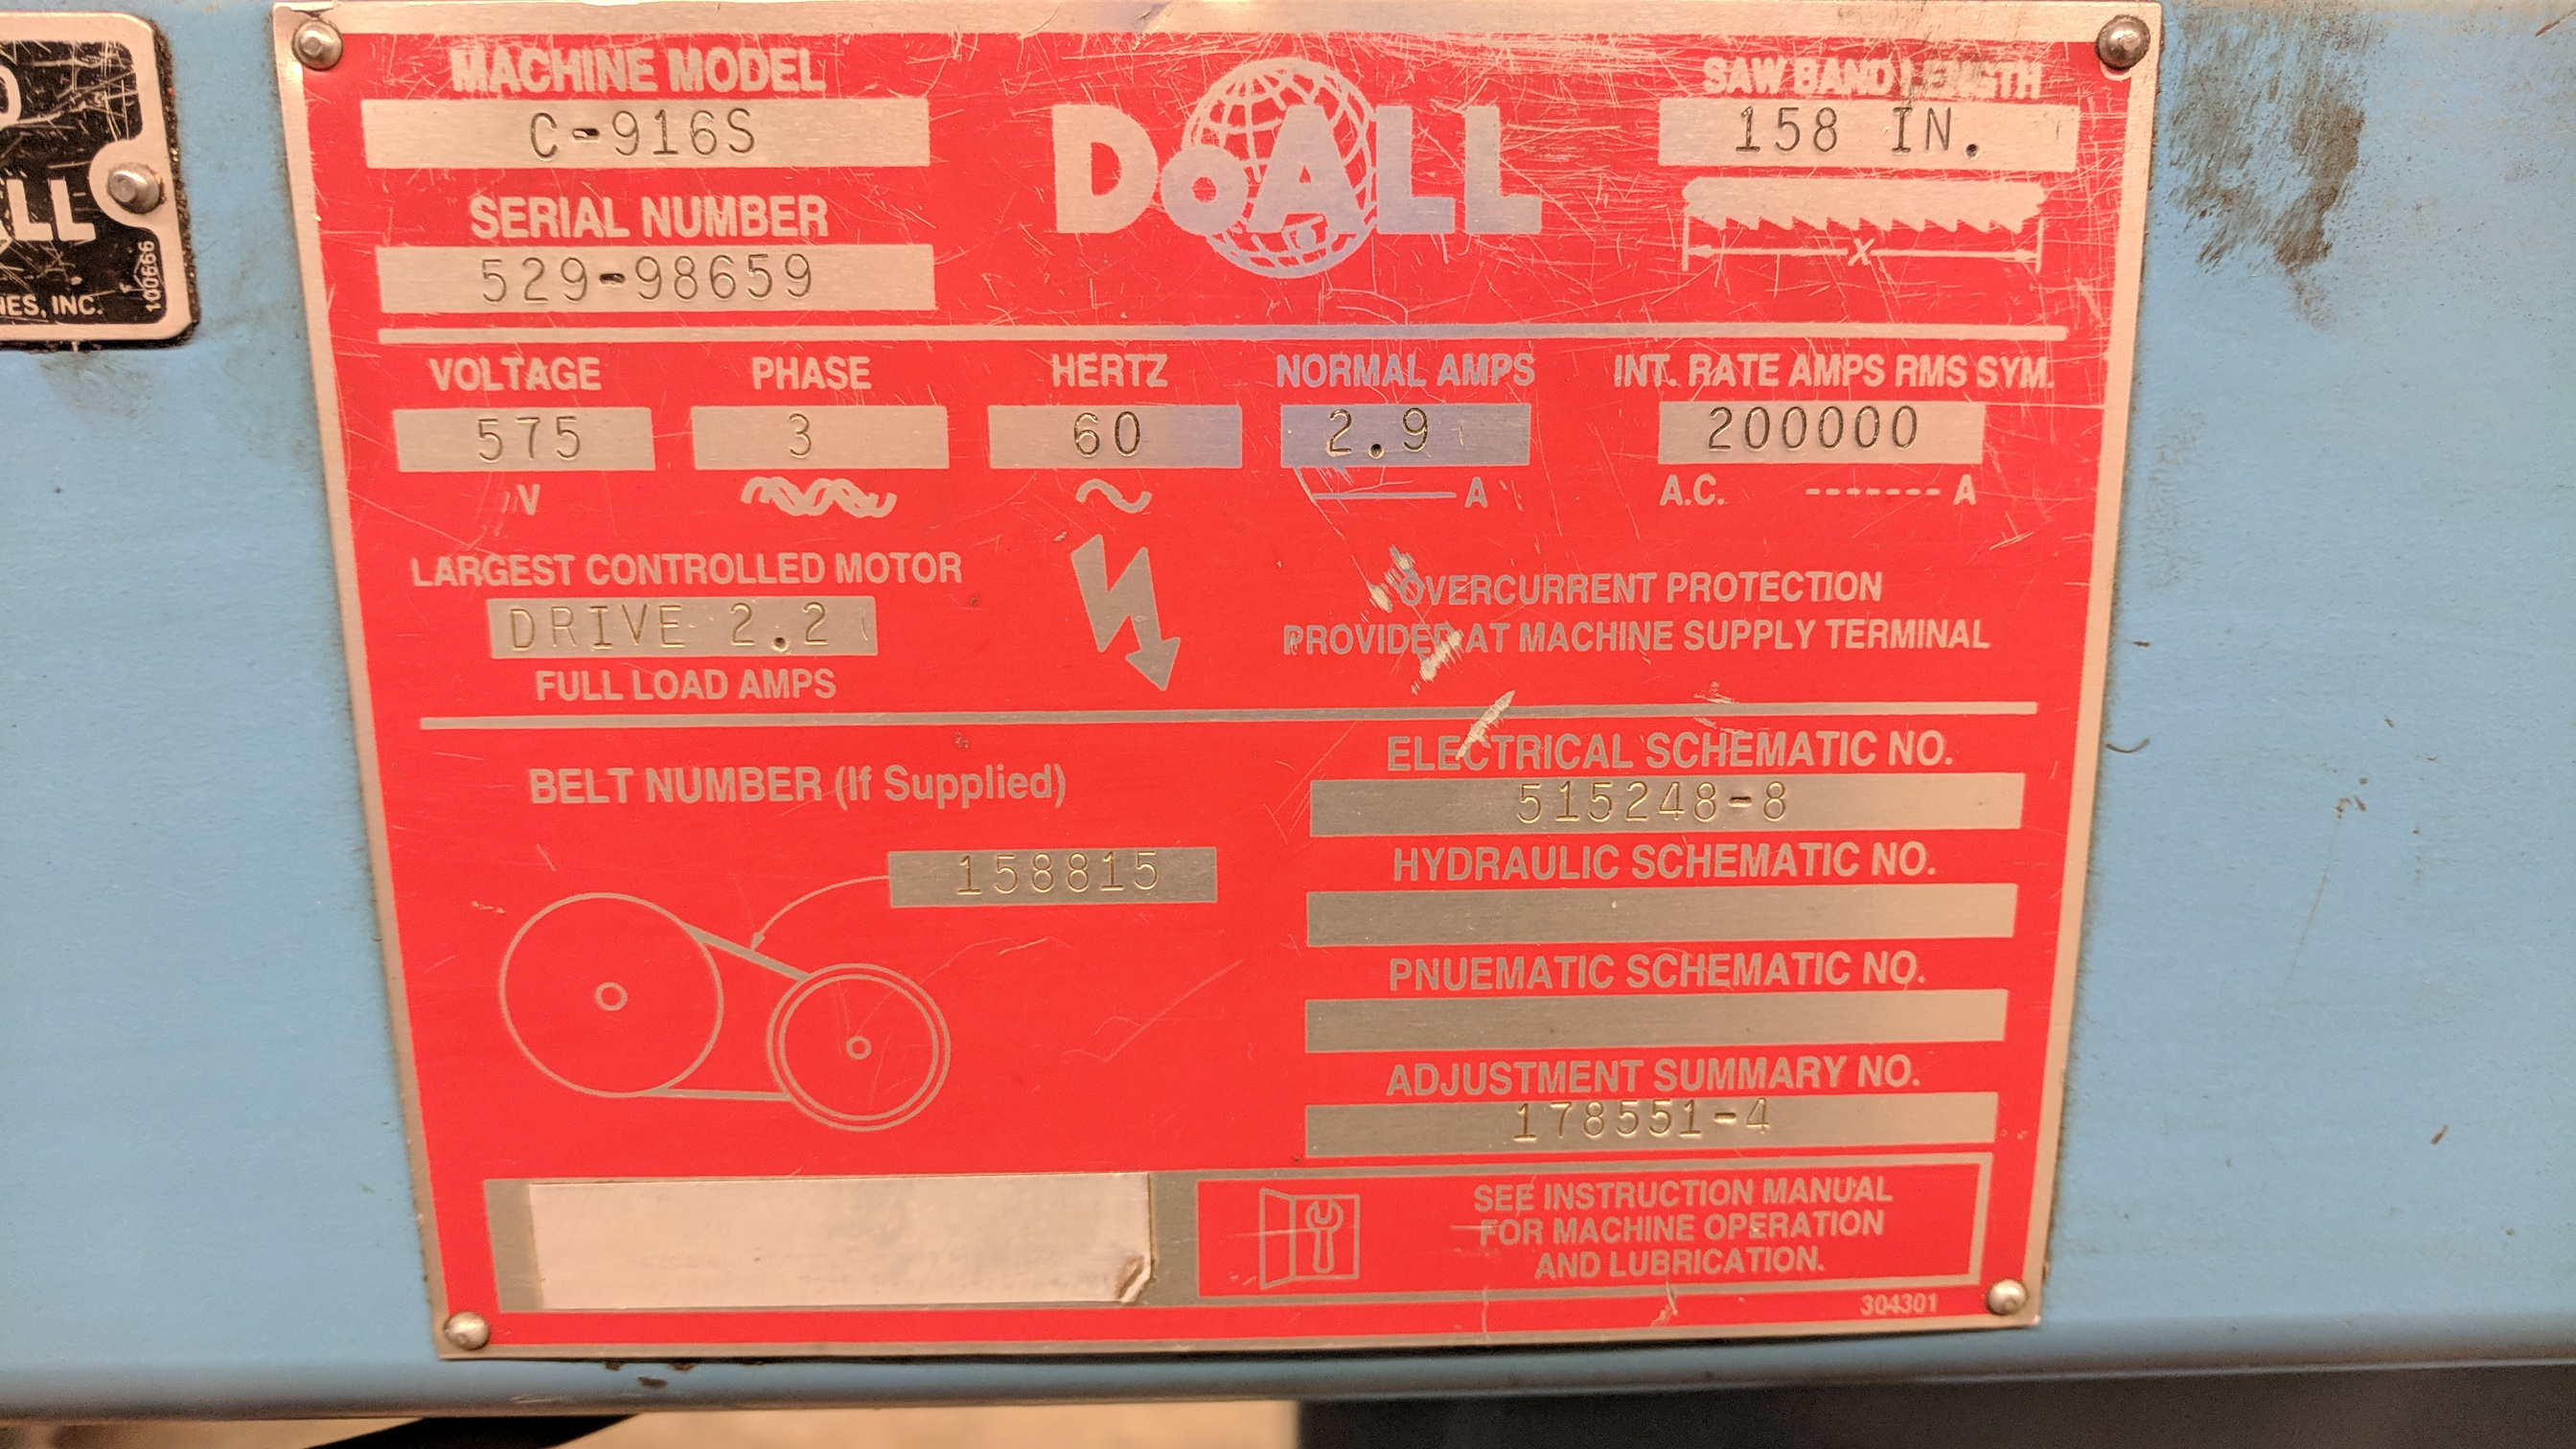 """DOALL C916S 9""""X16"""" METAL CUTTING HORIZONTAL BAND SAW WITH 1"""" X .035"""" X 158"""" BLADE, MITER CAPABILITY, - Image 7 of 7"""